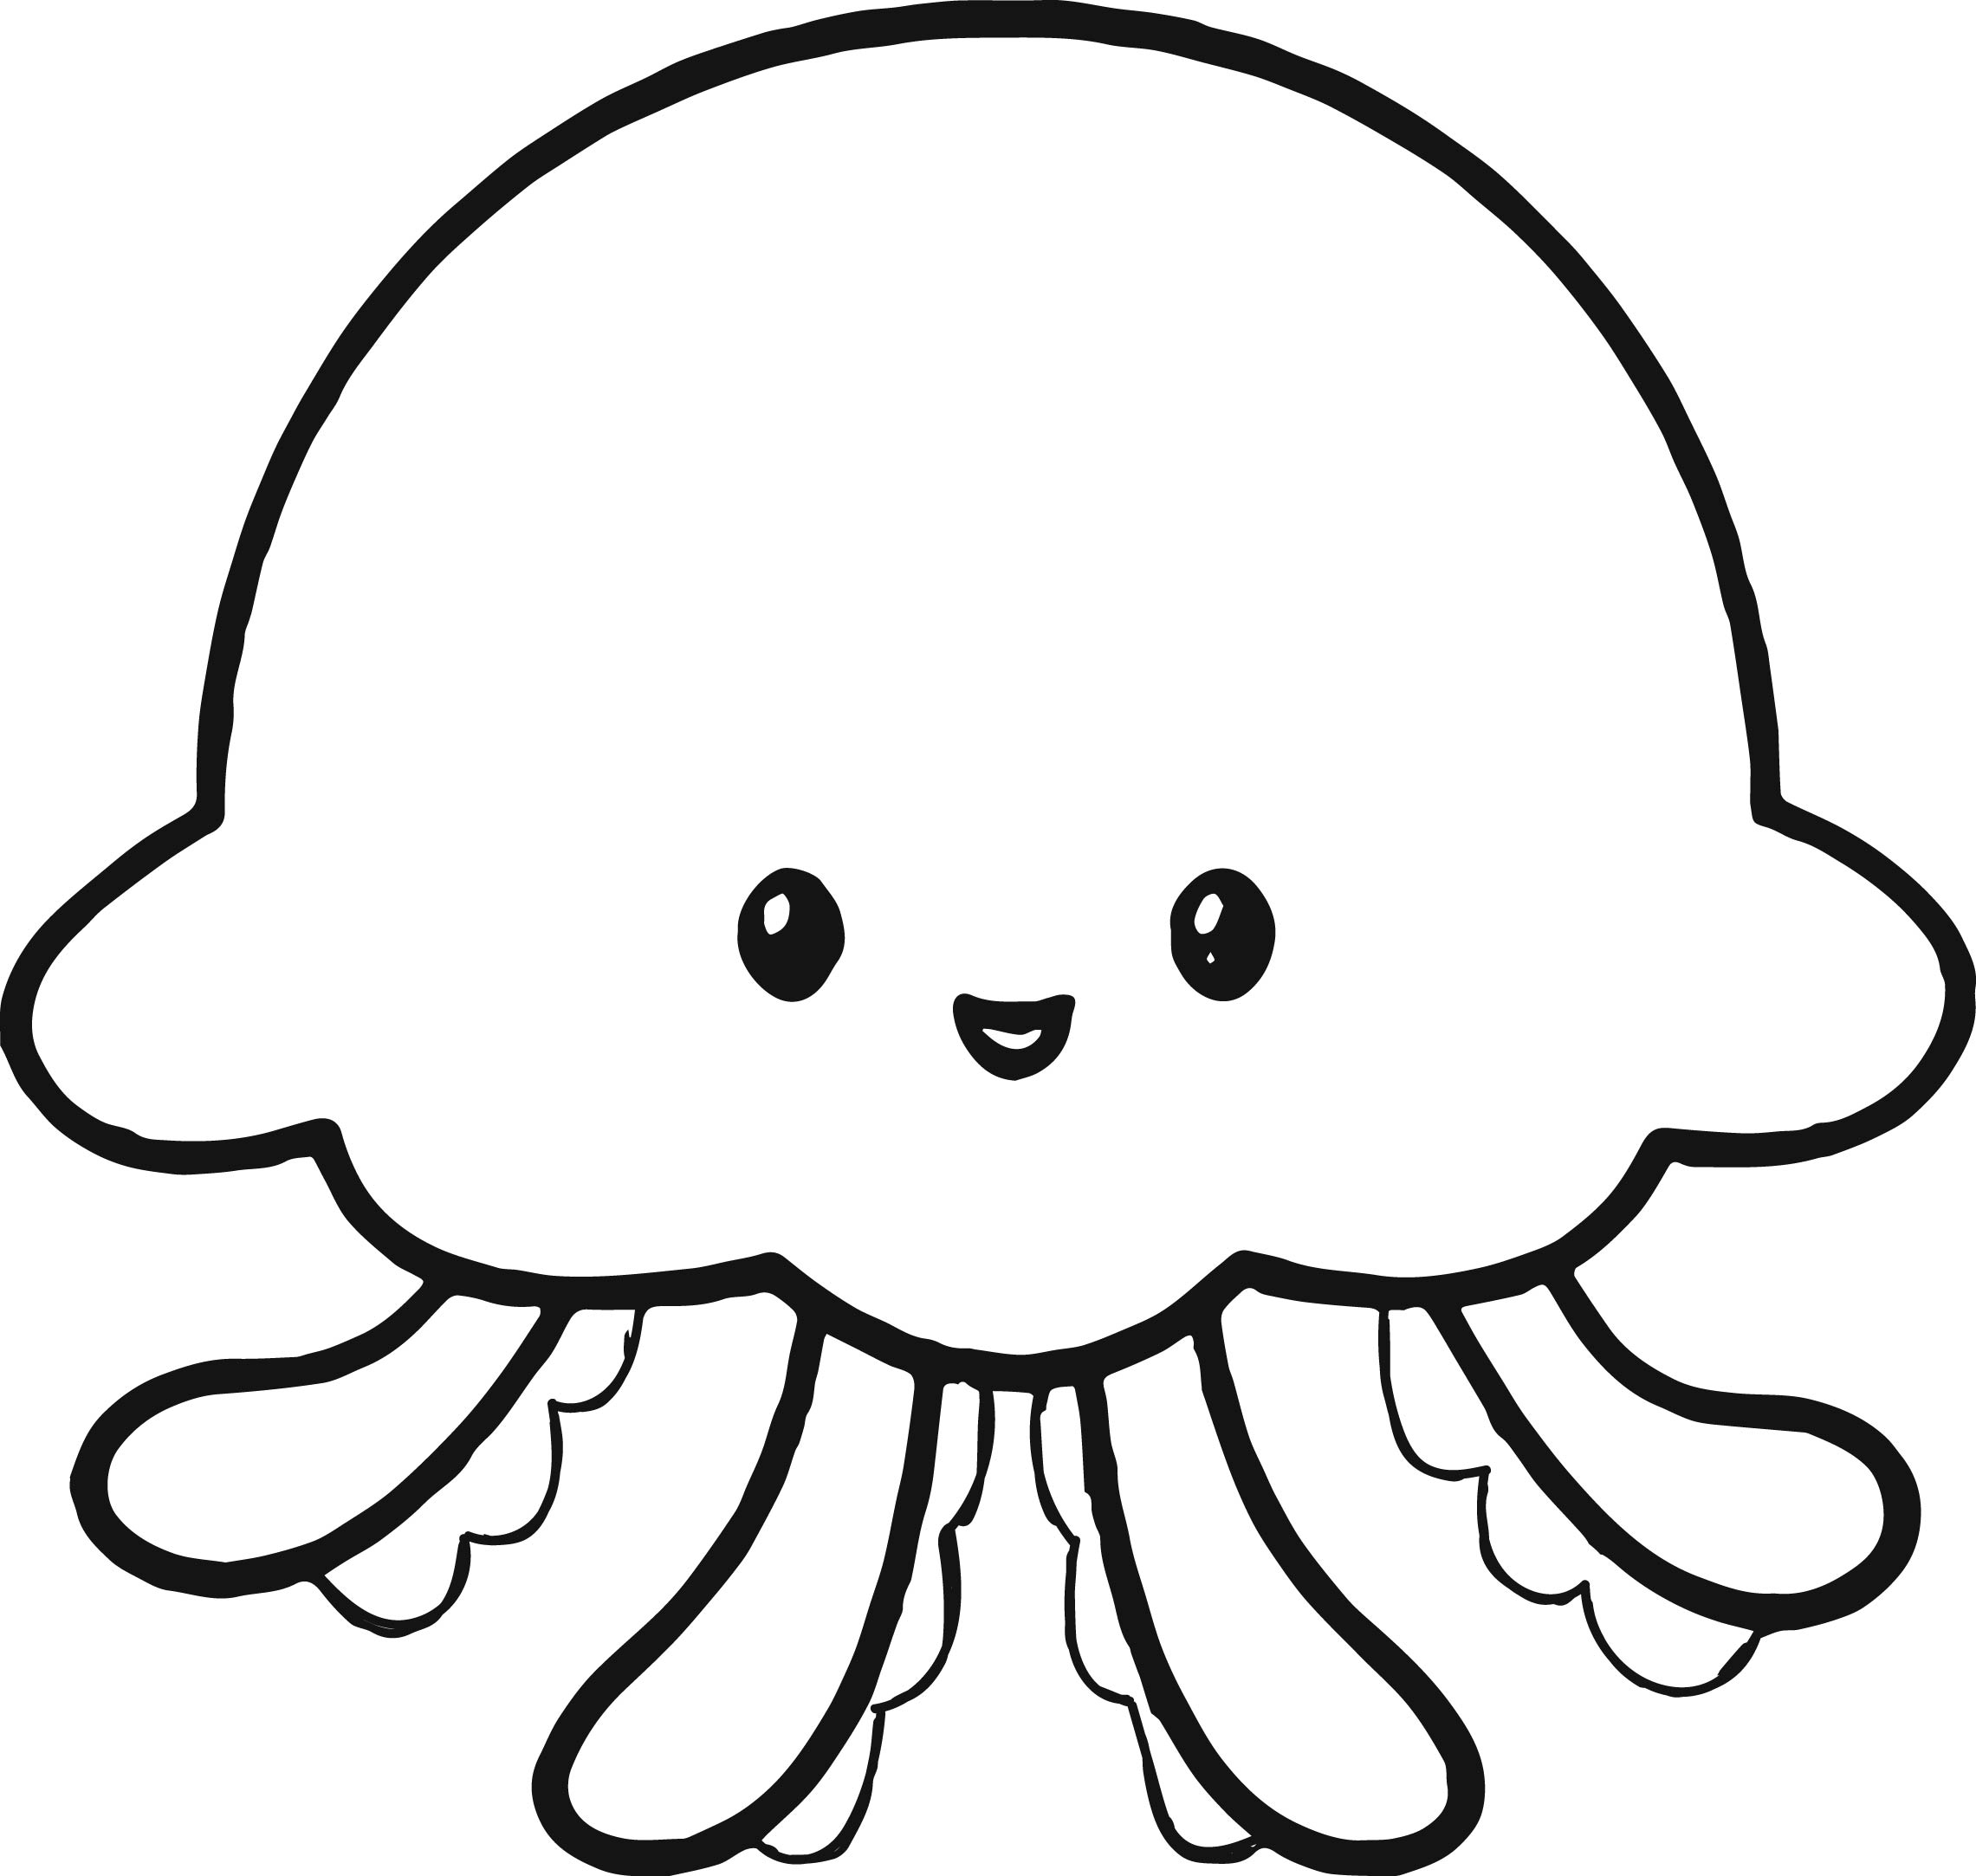 cute jellyfish coloring page - Jellyfish Coloring Pages